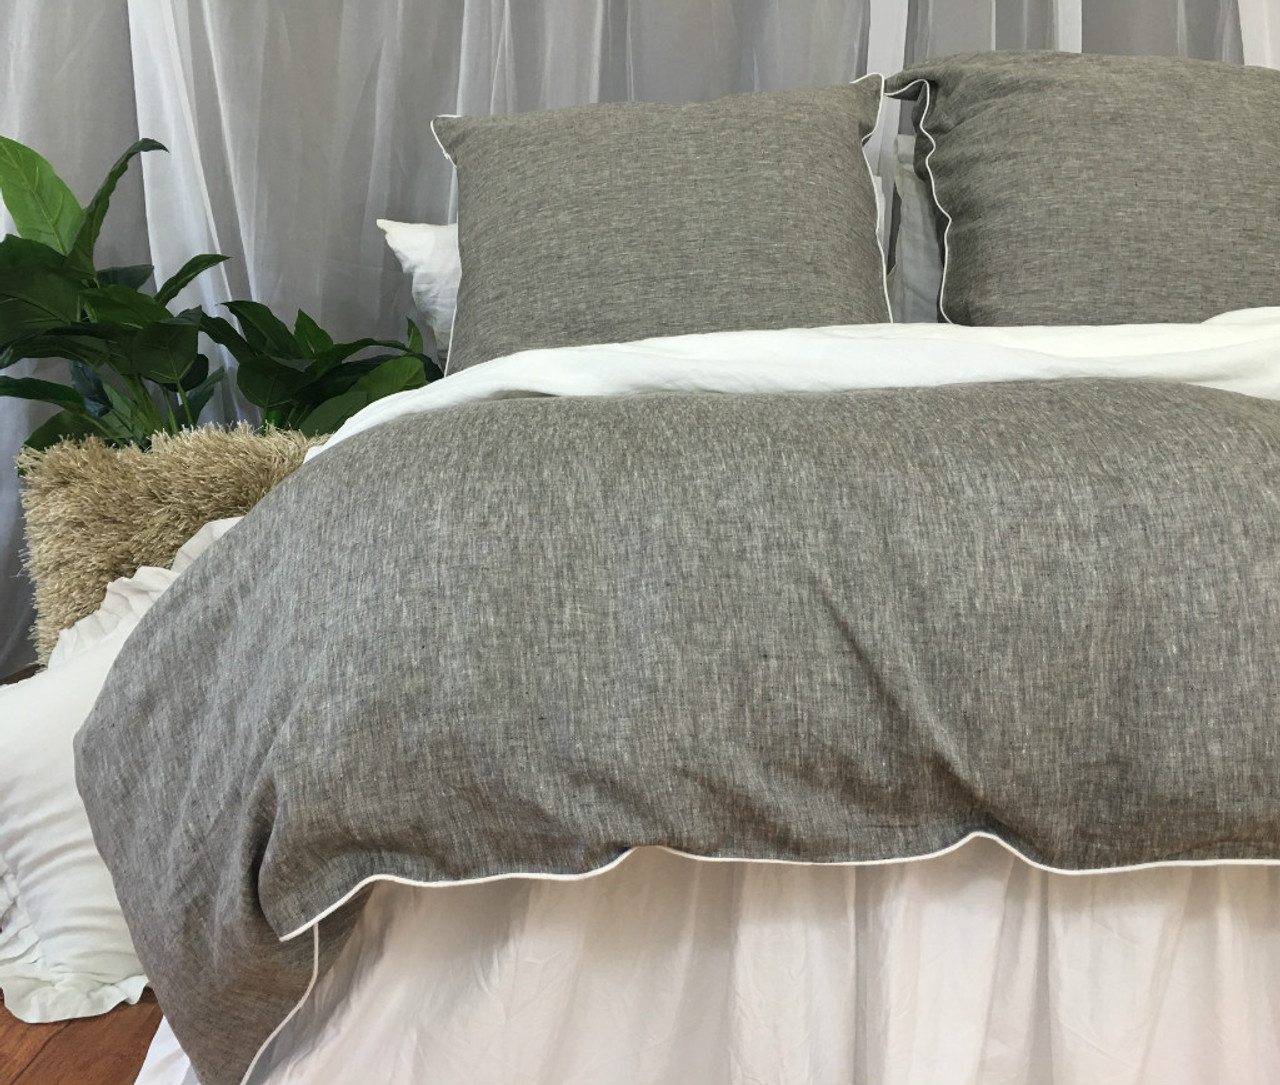 linen duvet cover queen Chambray Grey Linen Duvet Cover with Soft White Piping, Available  linen duvet cover queen